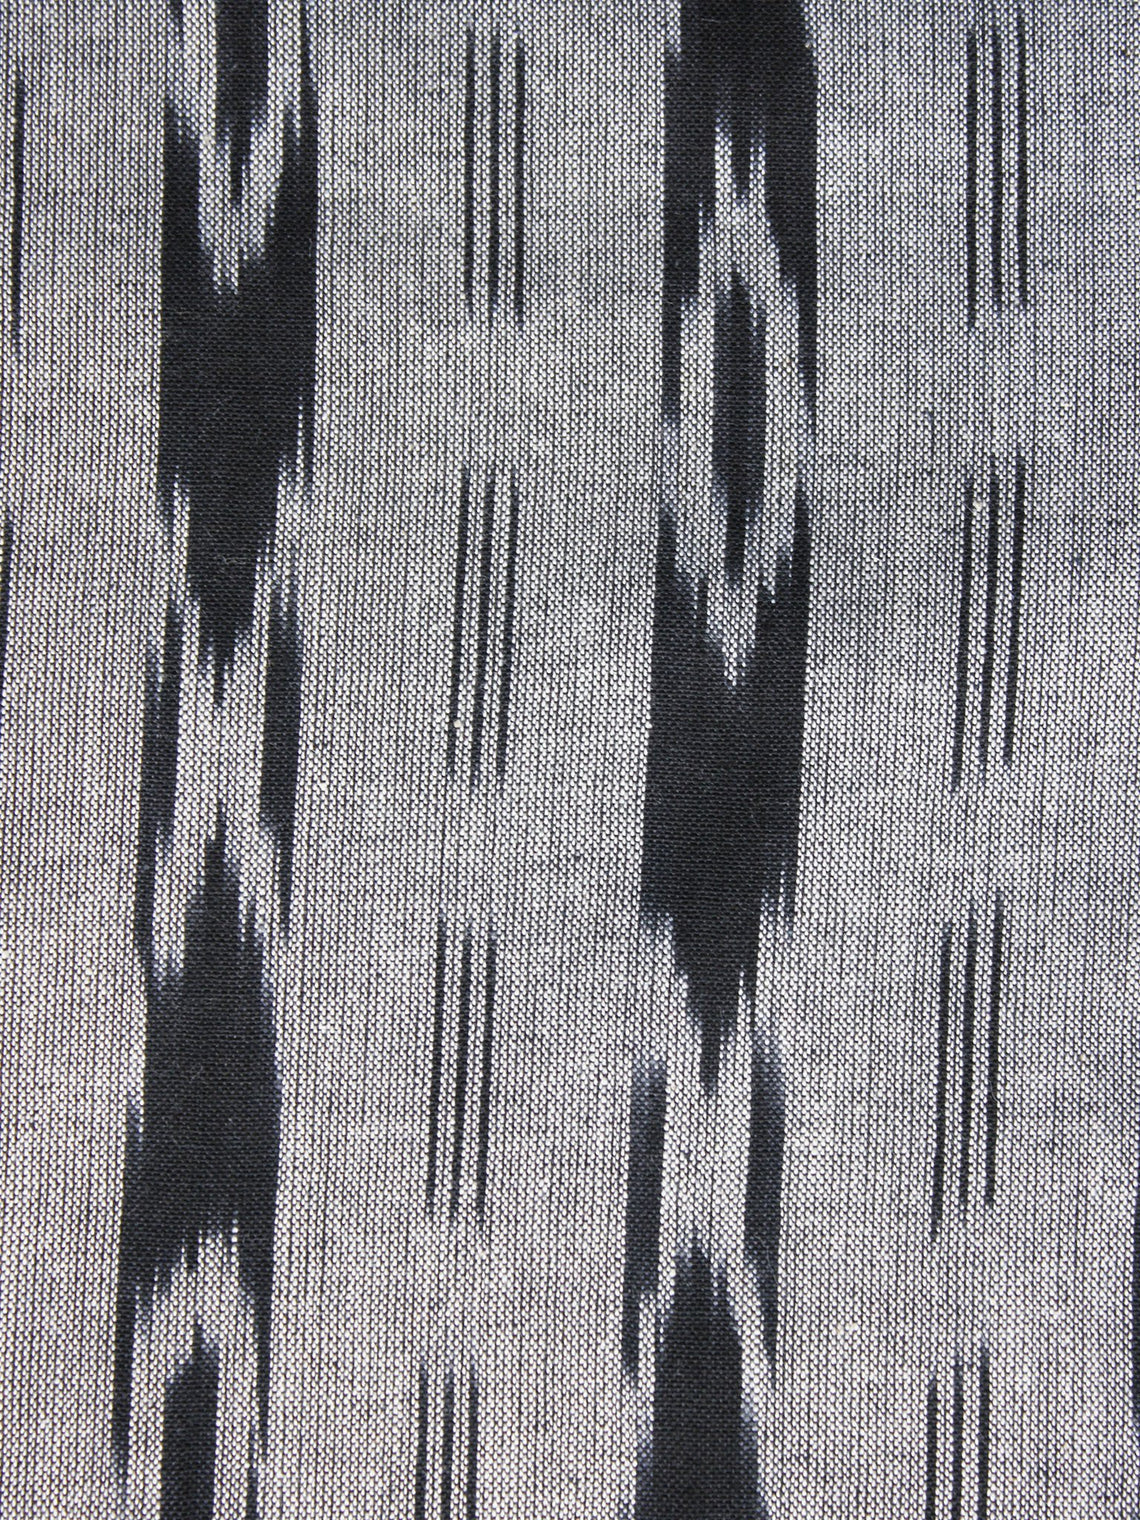 Grey Black Pochampally Hand Weaved Ikat Fabric Per Meter - F003F1256